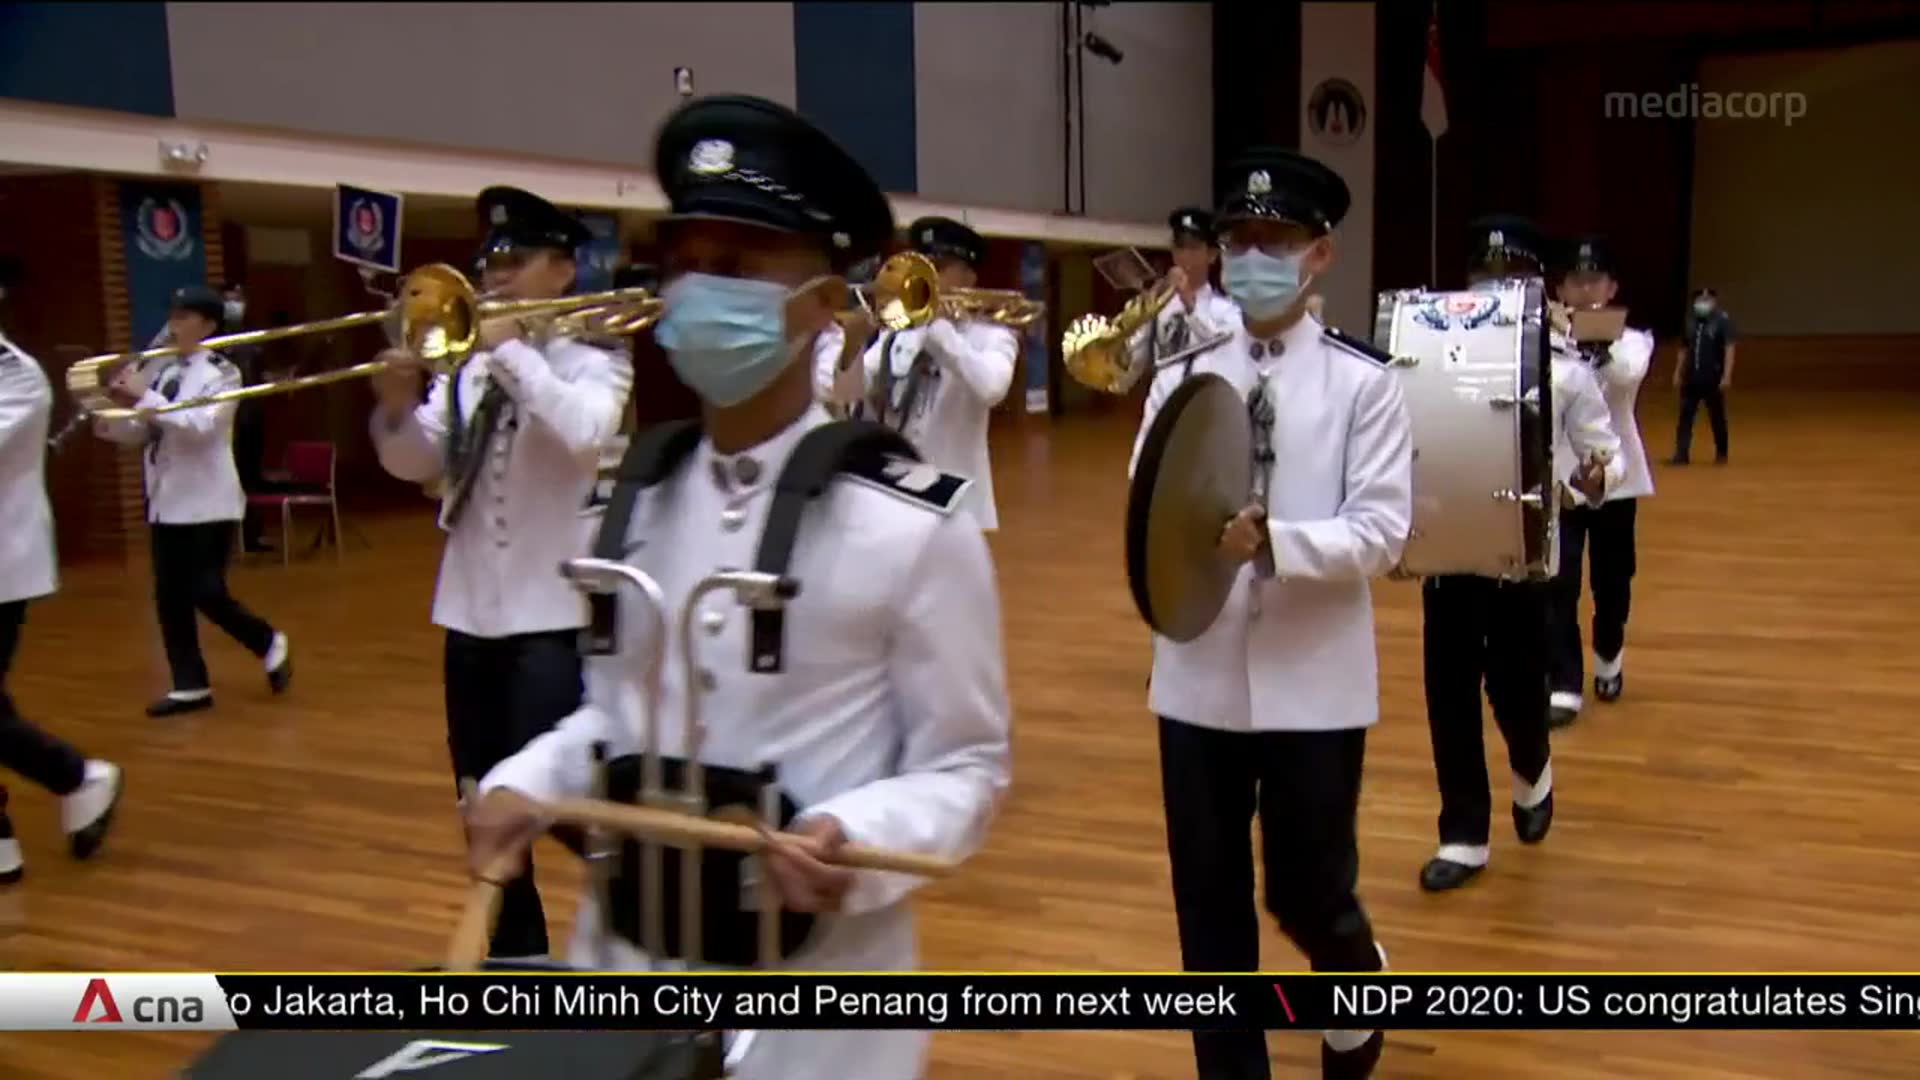 NDP 2020: Police band takes parade rehearsals online amid COVID-19 measures | Video